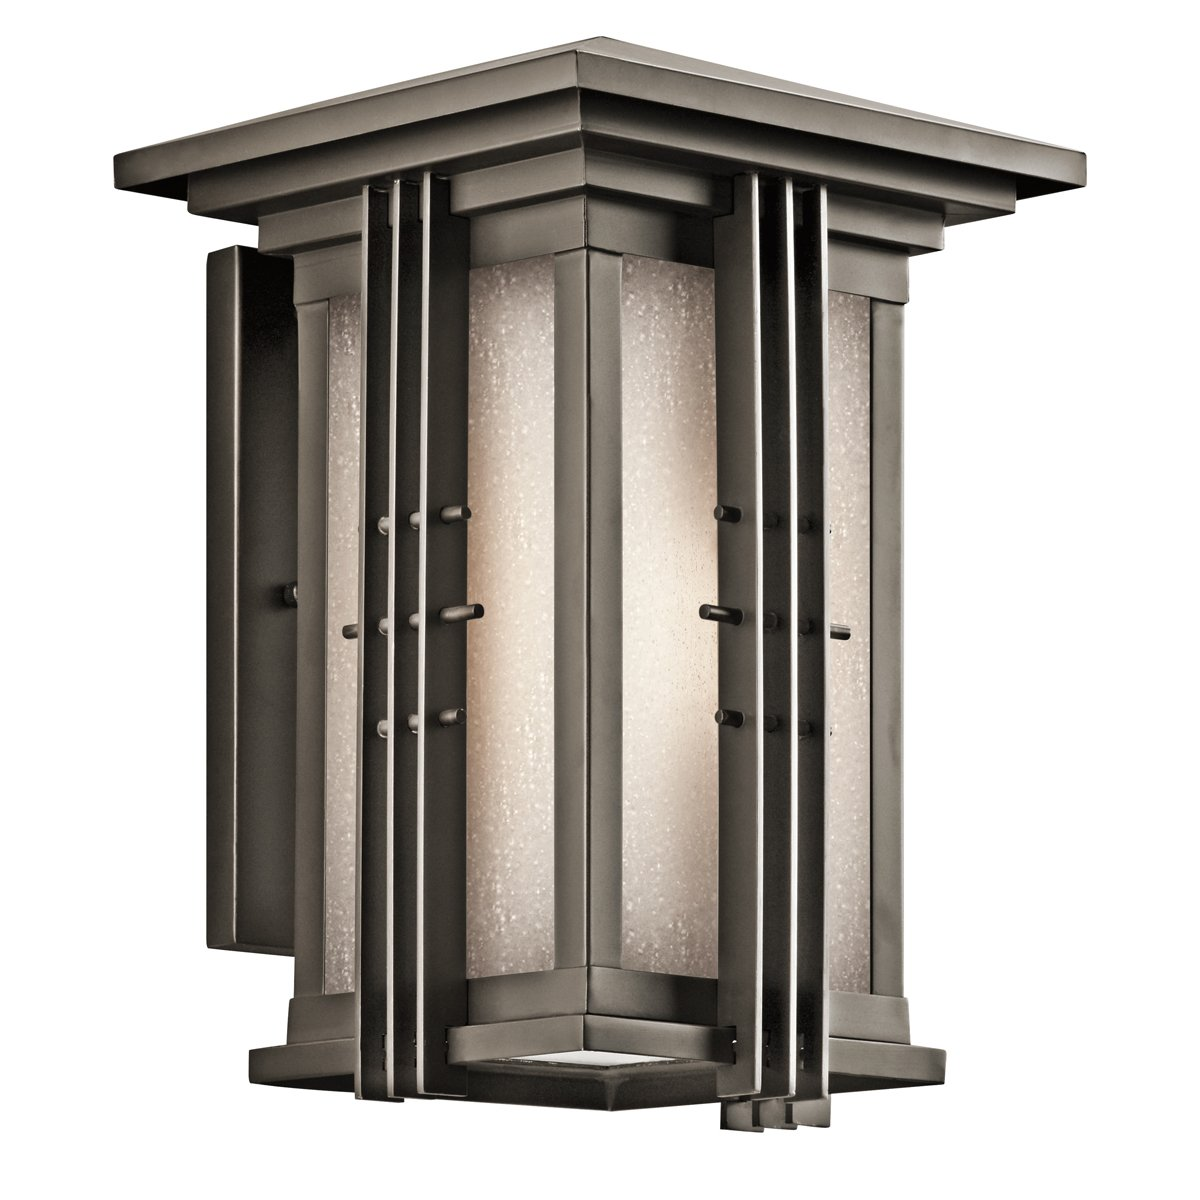 Kichler Lighting 49159OZ Portman Square Outdoor Sconce  Olde Bronze   Wall  Porch Lights   Amazon comKichler Lighting 49159OZ Portman Square Outdoor Sconce  Olde  . Kichler Lighting Outdoor Sconce. Home Design Ideas